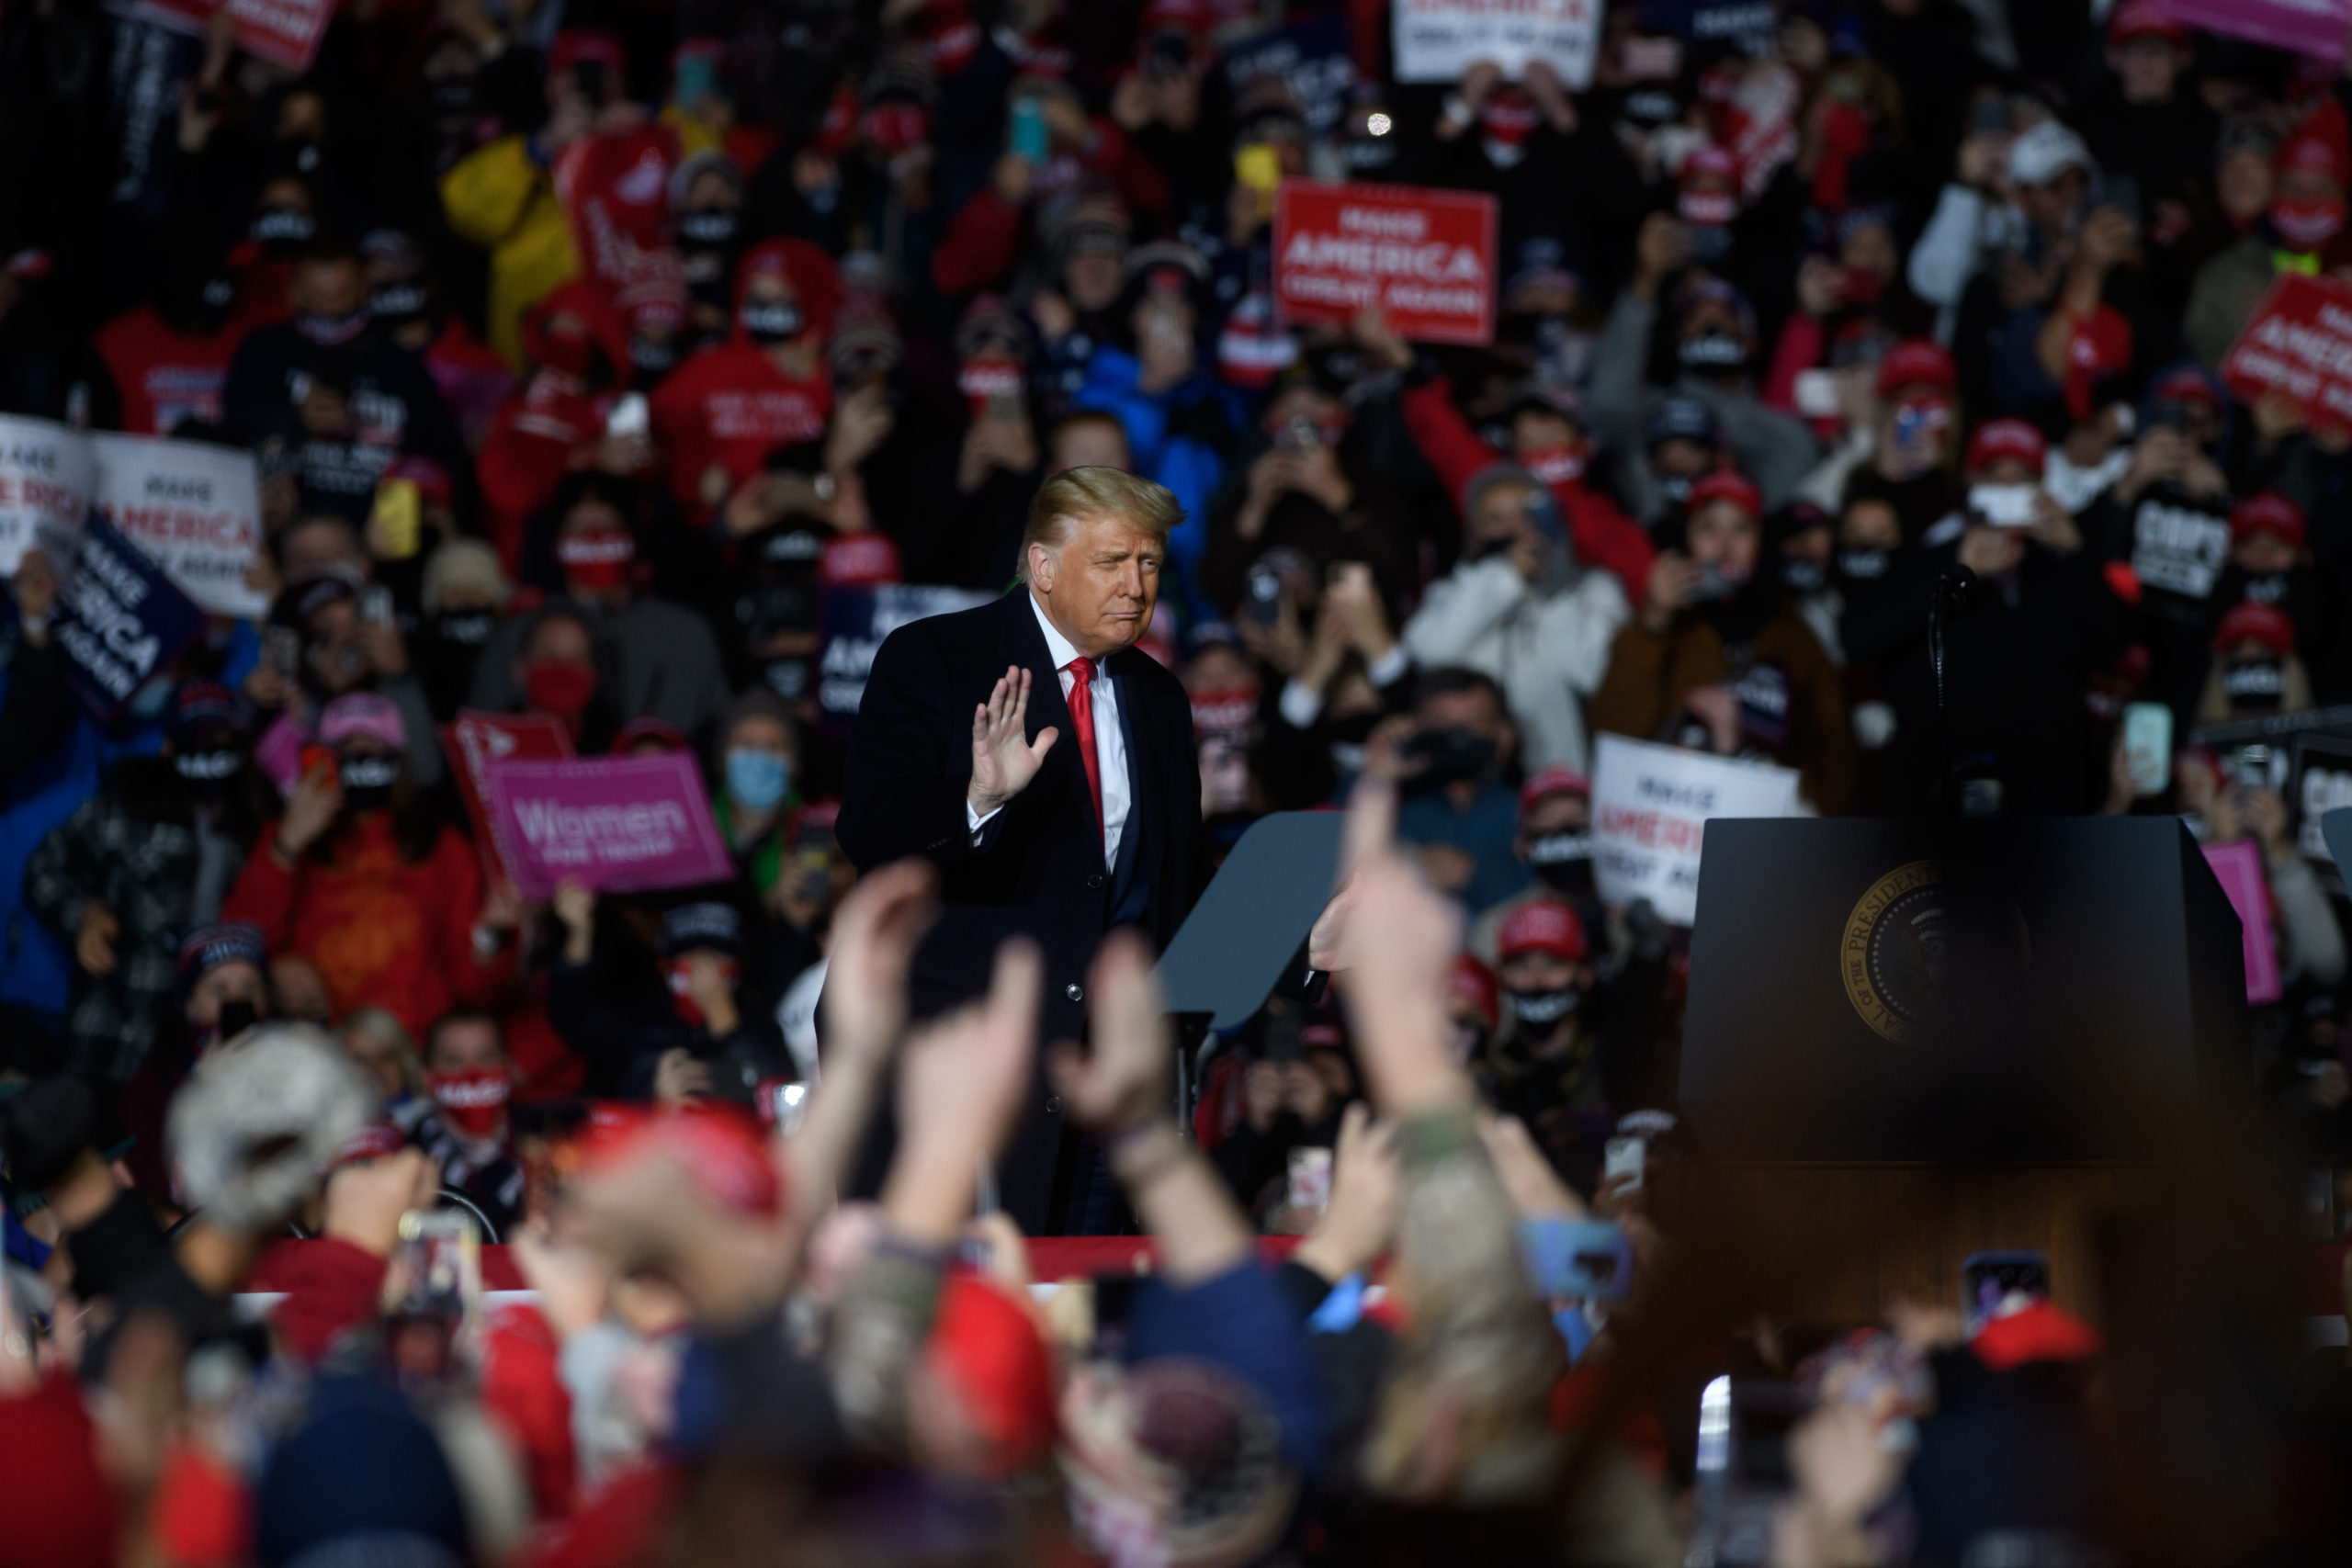 ERIE, PA - OCTOBER 20: U.S. President Donald Trump holds a campaign rally at North Coast Air aeronautical services at Erie International Airport on October 20, 2020 in Erie, Pennsylvania. Trump is holding the rally two days ahead of the final presidential debate. (Photo by Jeff Swensen/Getty Images)